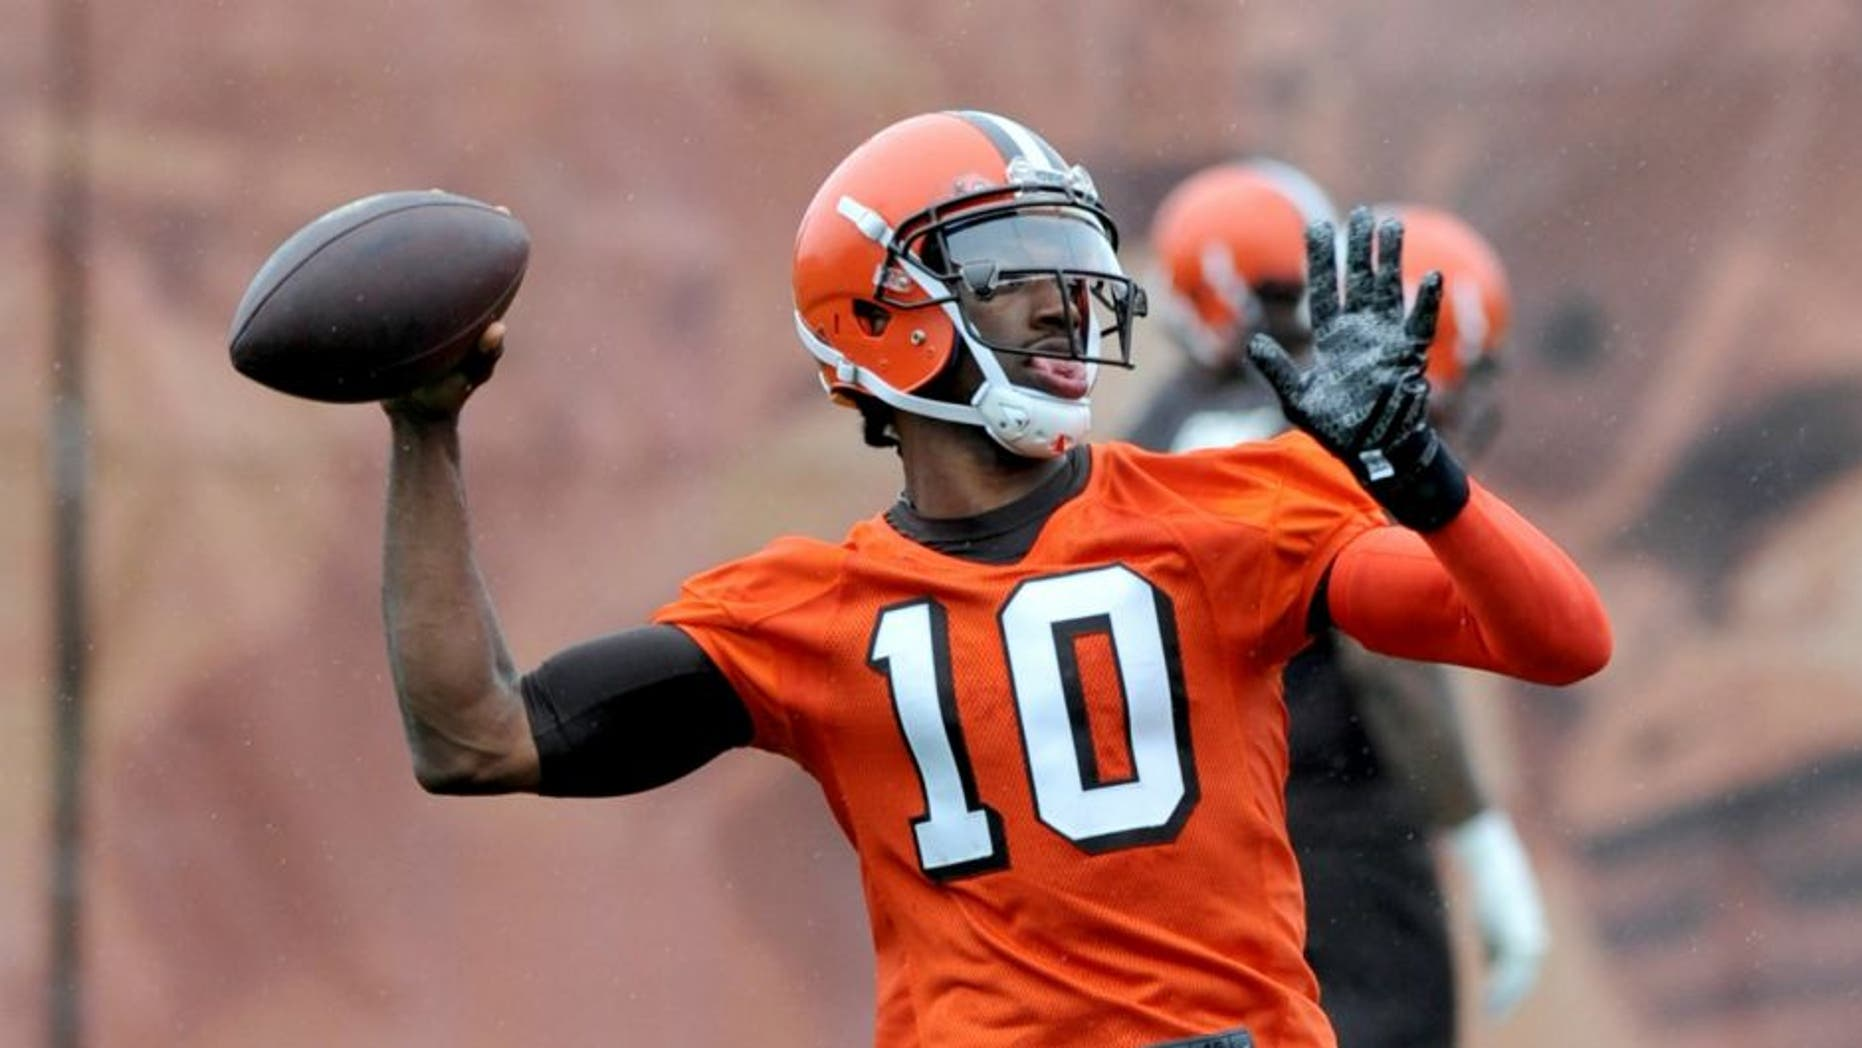 BEREA, OH - APRIL 21, 2016: Quarterback Robert Griffin III #10 of the Cleveland Browns throws a pass during a voluntary minicamp on April 21, 2016 at the Cleveland Browns training facility in Berea, Ohio. (Photo by Nick Cammett/Diamond Images/Getty Images) *** Local Caption *** Robert Griffin III